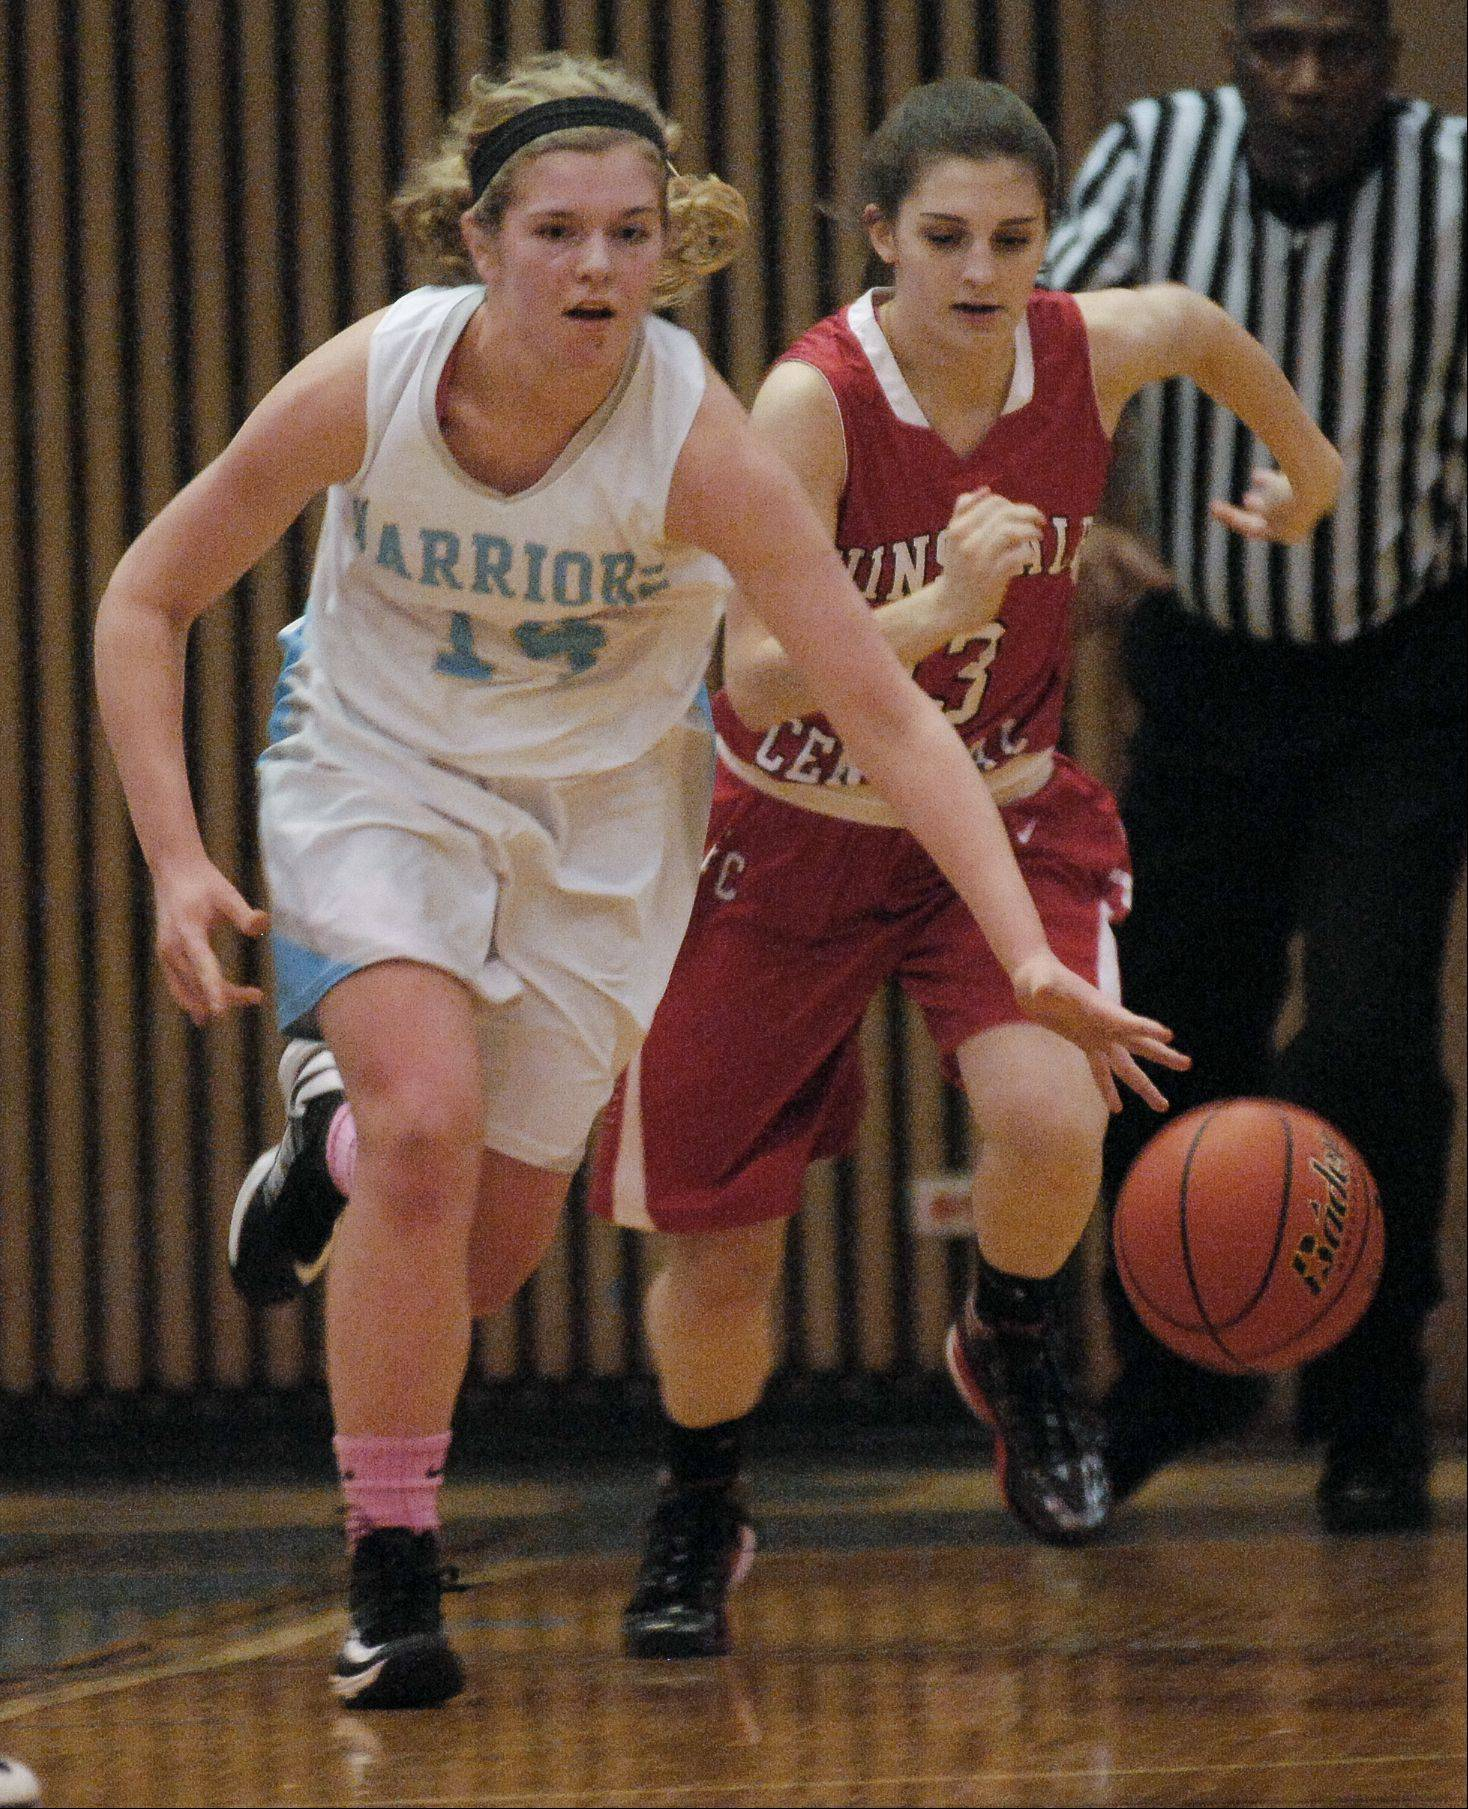 Lauren Carroll of Willowbrook breaks away from Payton Katich of Hinsdale Central.